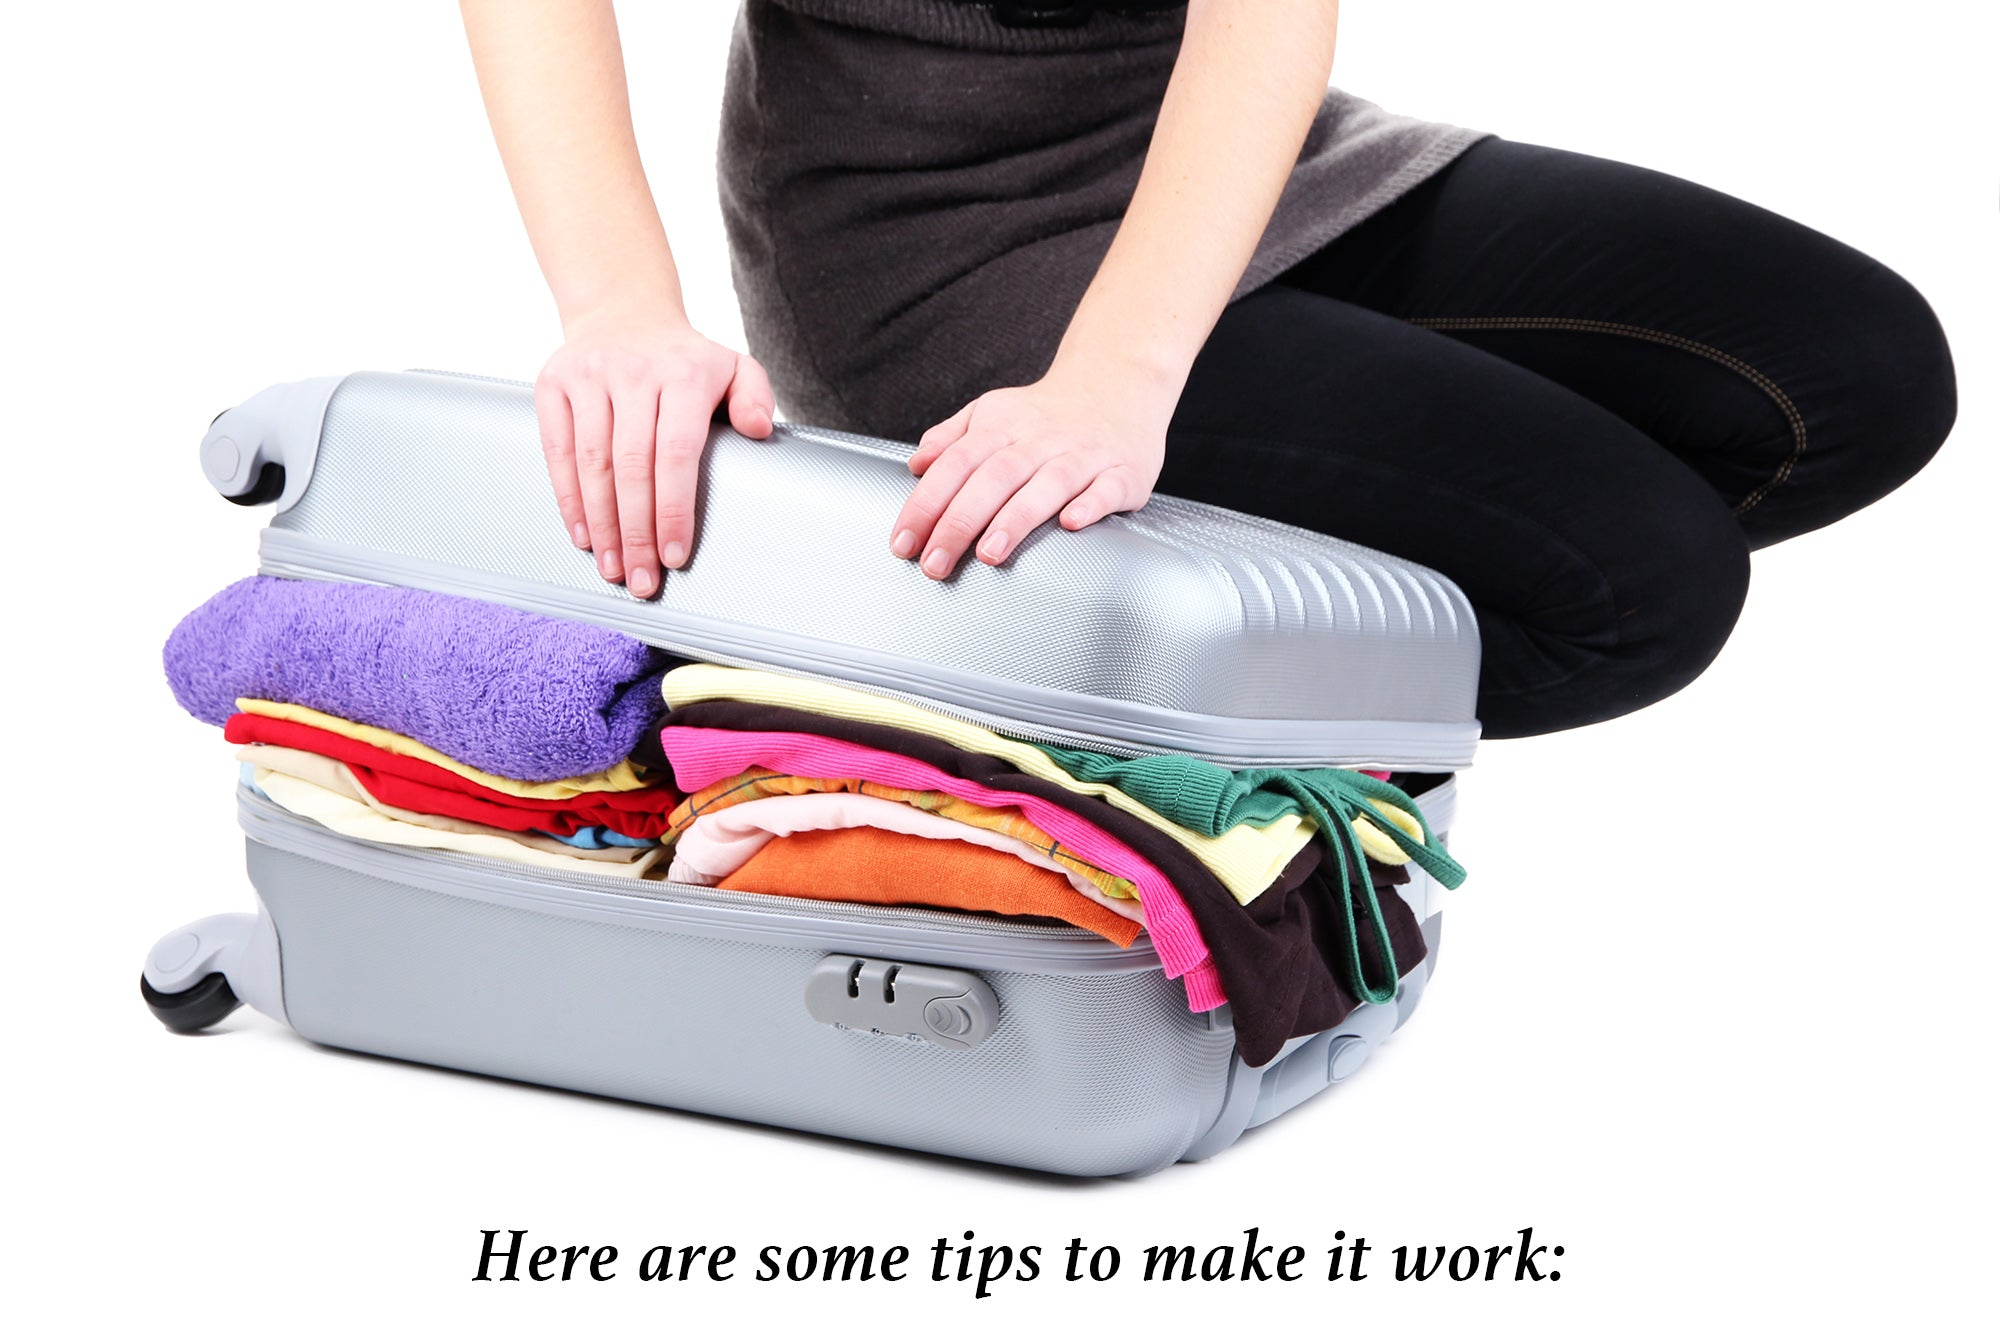 Fold Or Roll How To Pack Your Travel Bag For Maximum Efficiency Hand Rolling Compressed Again While It Depends What Type Of Clothing Items Youre Bringing Folding Clothes Flat May Allow More Compression Overall